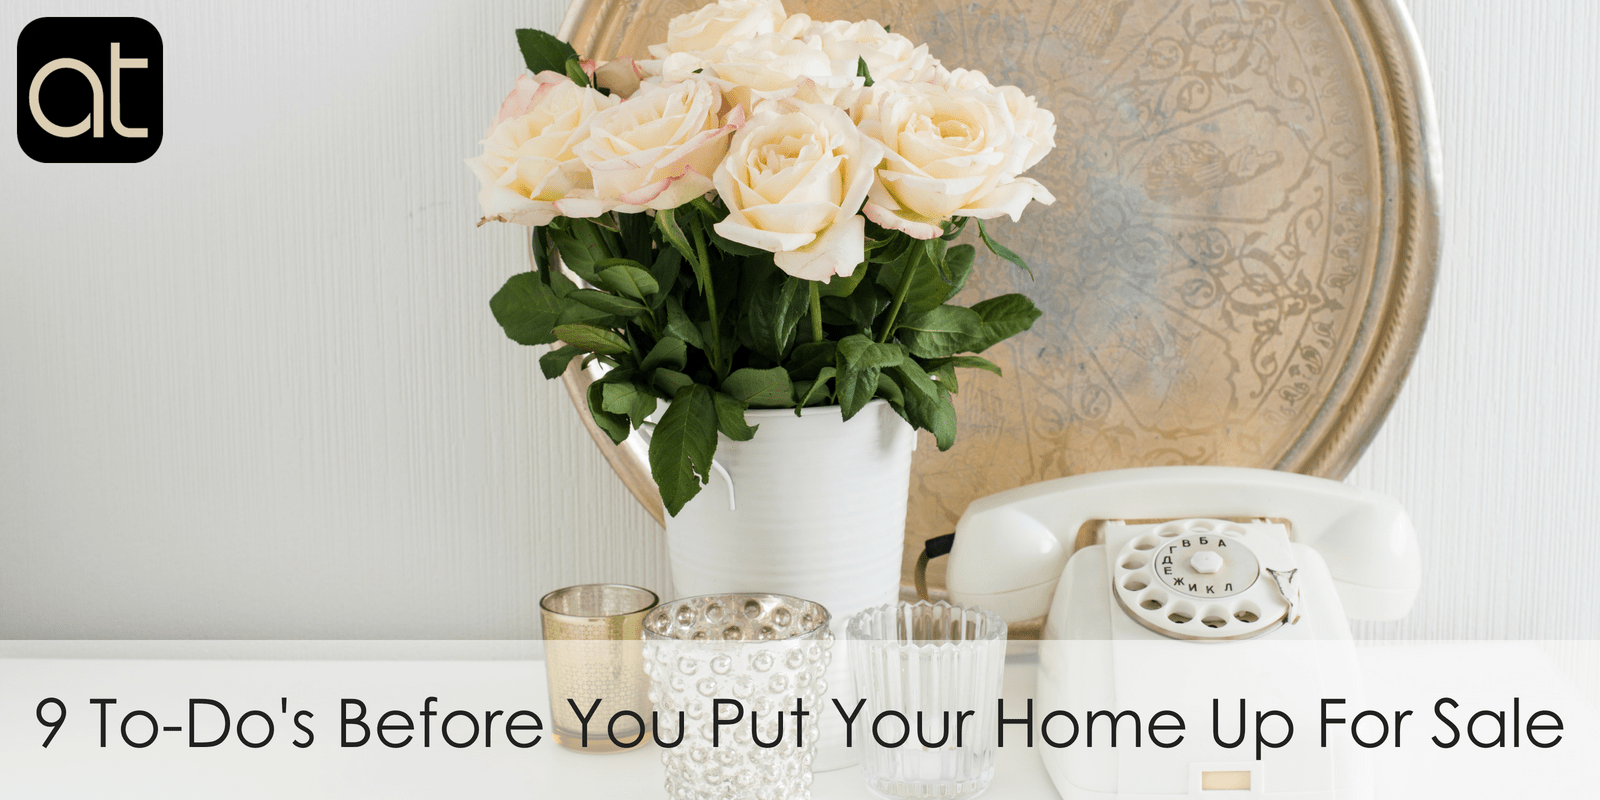 9 To-Do's Before You Put Your Home Up For Sale